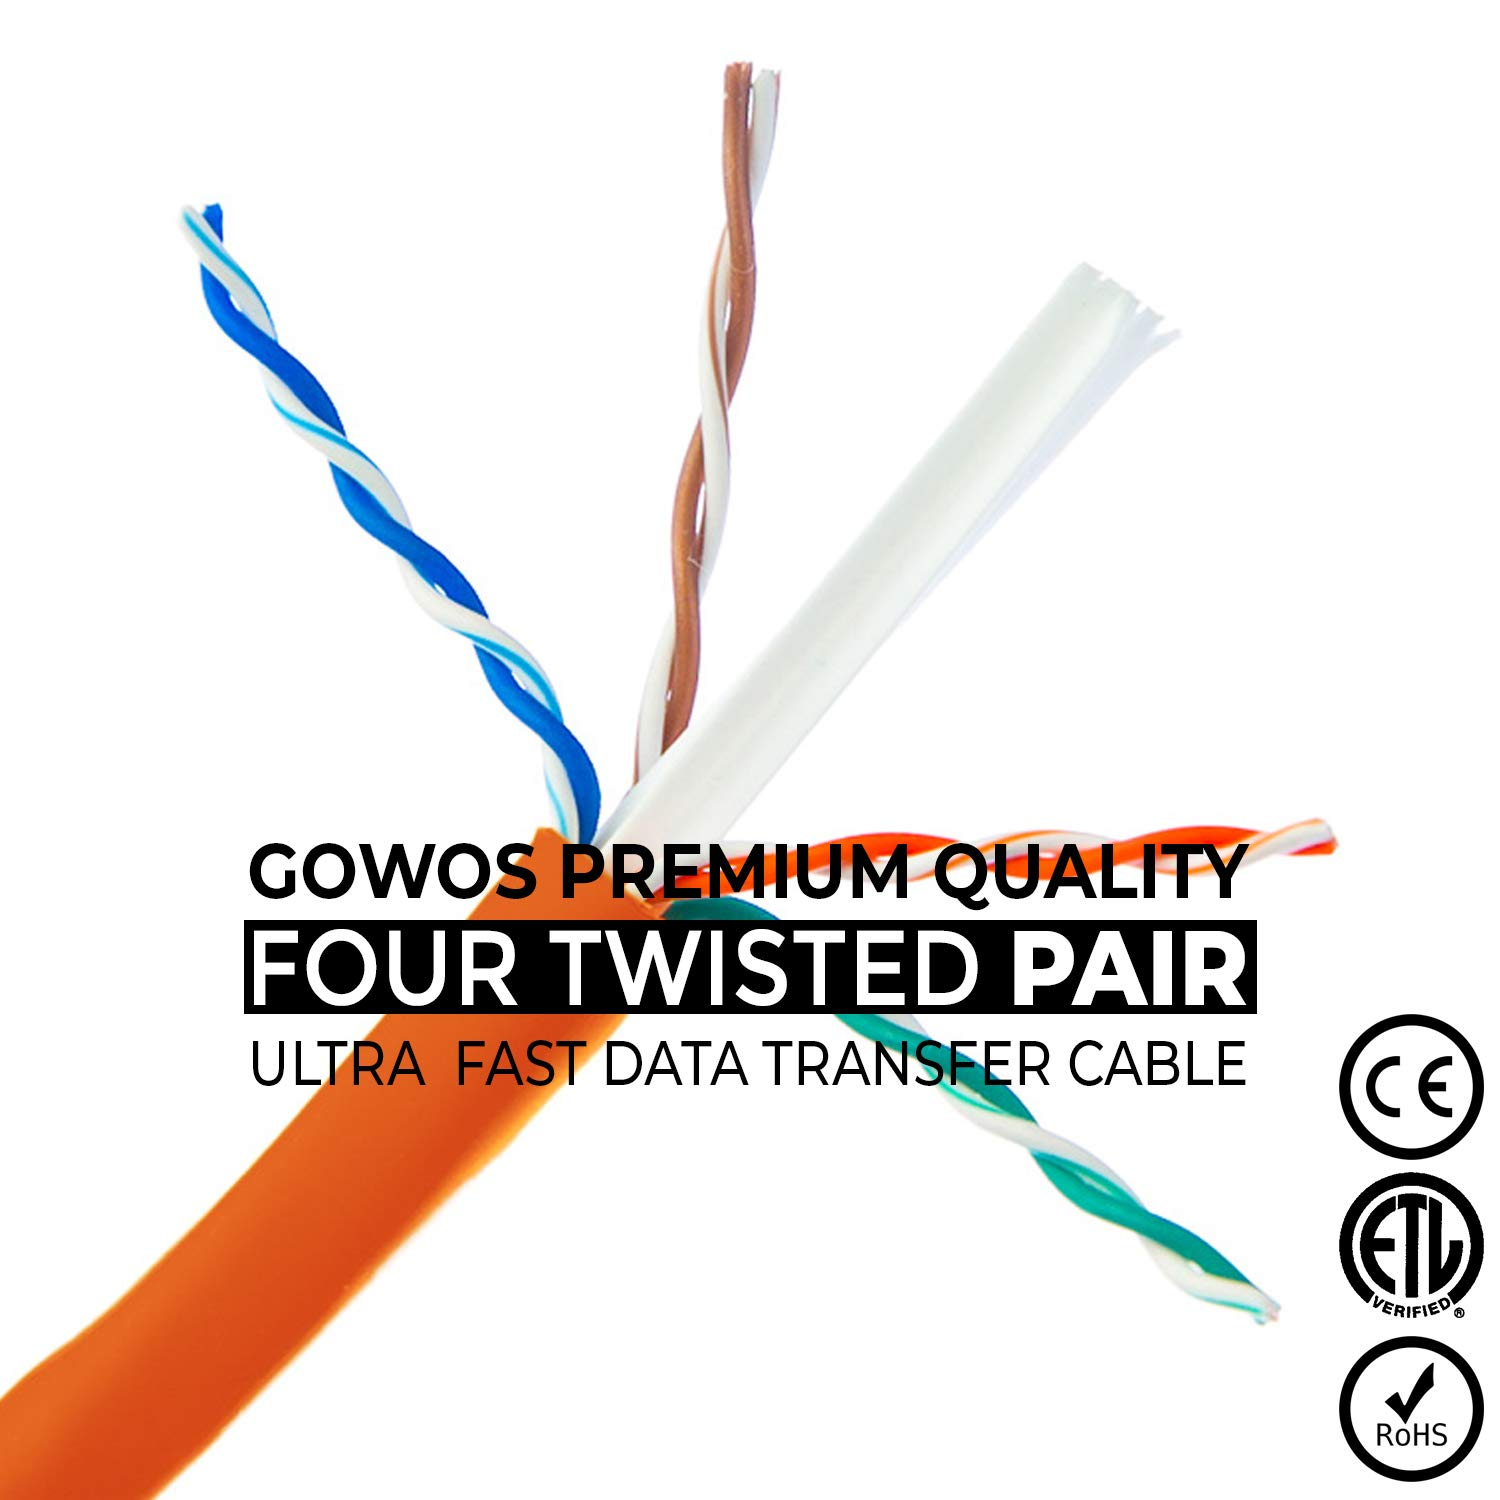 10-Pack - 75 Feet 24AWG Network Cable with Gold Plated RJ45 Non-Booted Connector 350MHz 1Gigabit//Sec High Speed LAN Internet//Patch Cable GOWOS Cat5e Ethernet Cable Orange